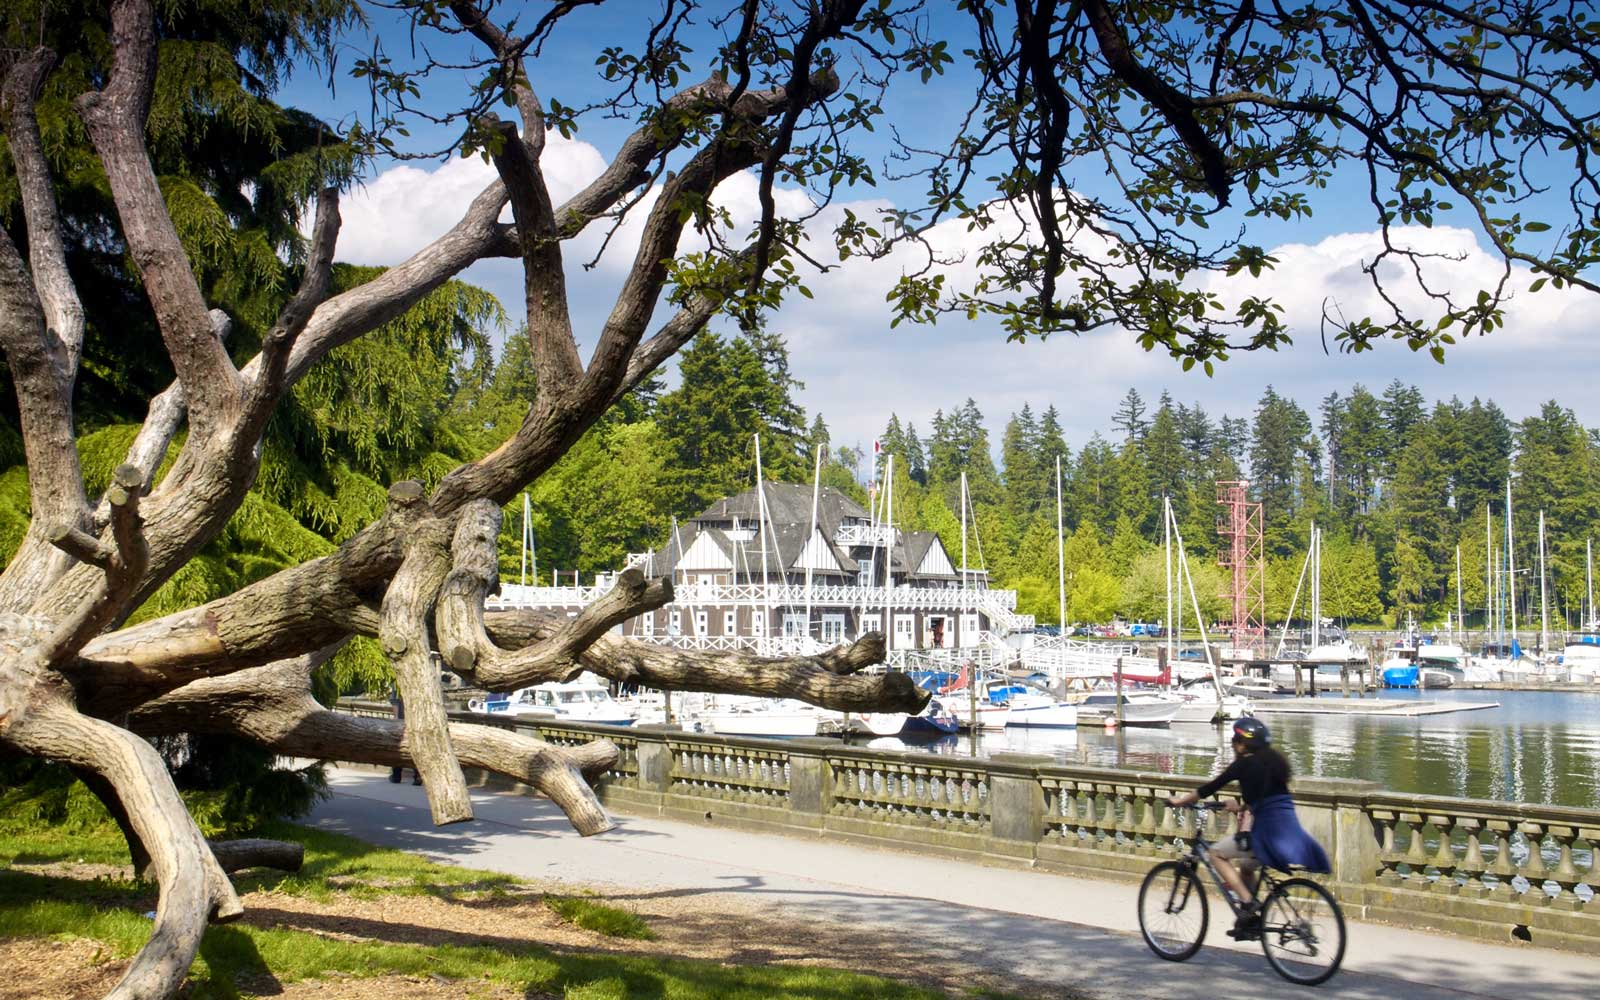 Riding a bike in Stanley Park, Vancouver